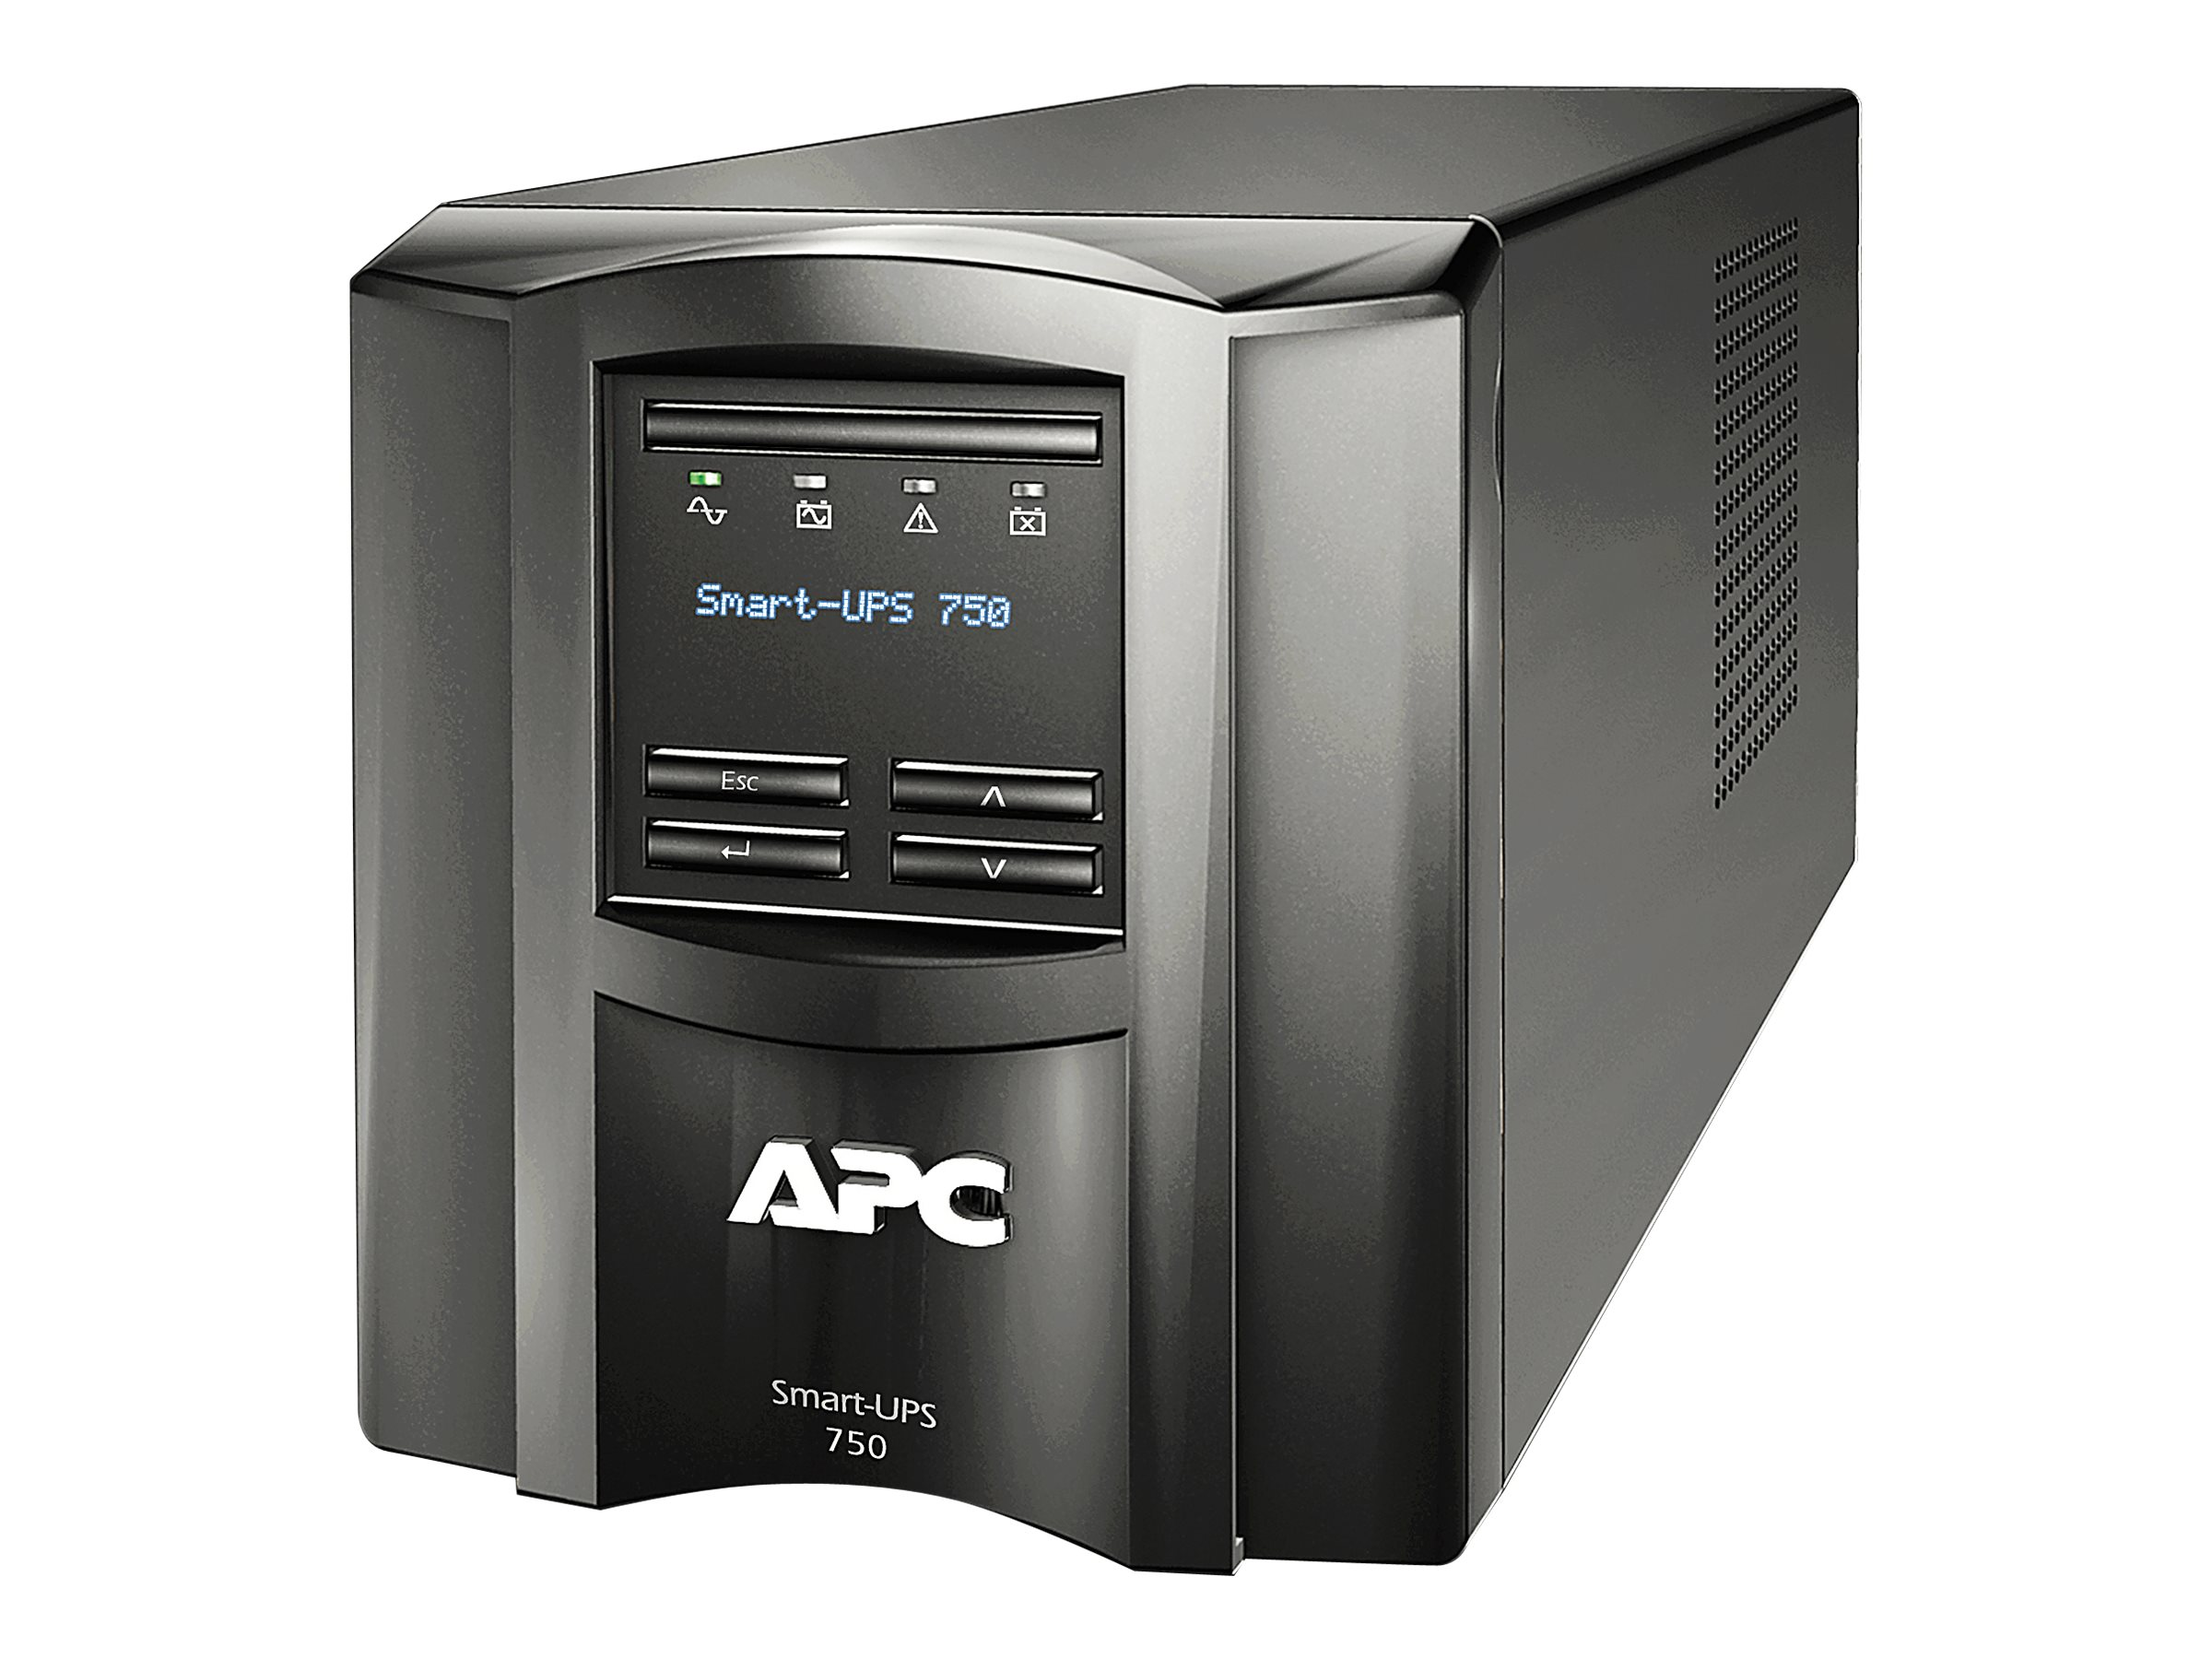 APC Smart-UPS 750VA 500W 120V LCD Tower UPS (6) 5-15R Outlets USB, EXCLUSIVE Buy - Save $15, SMT750